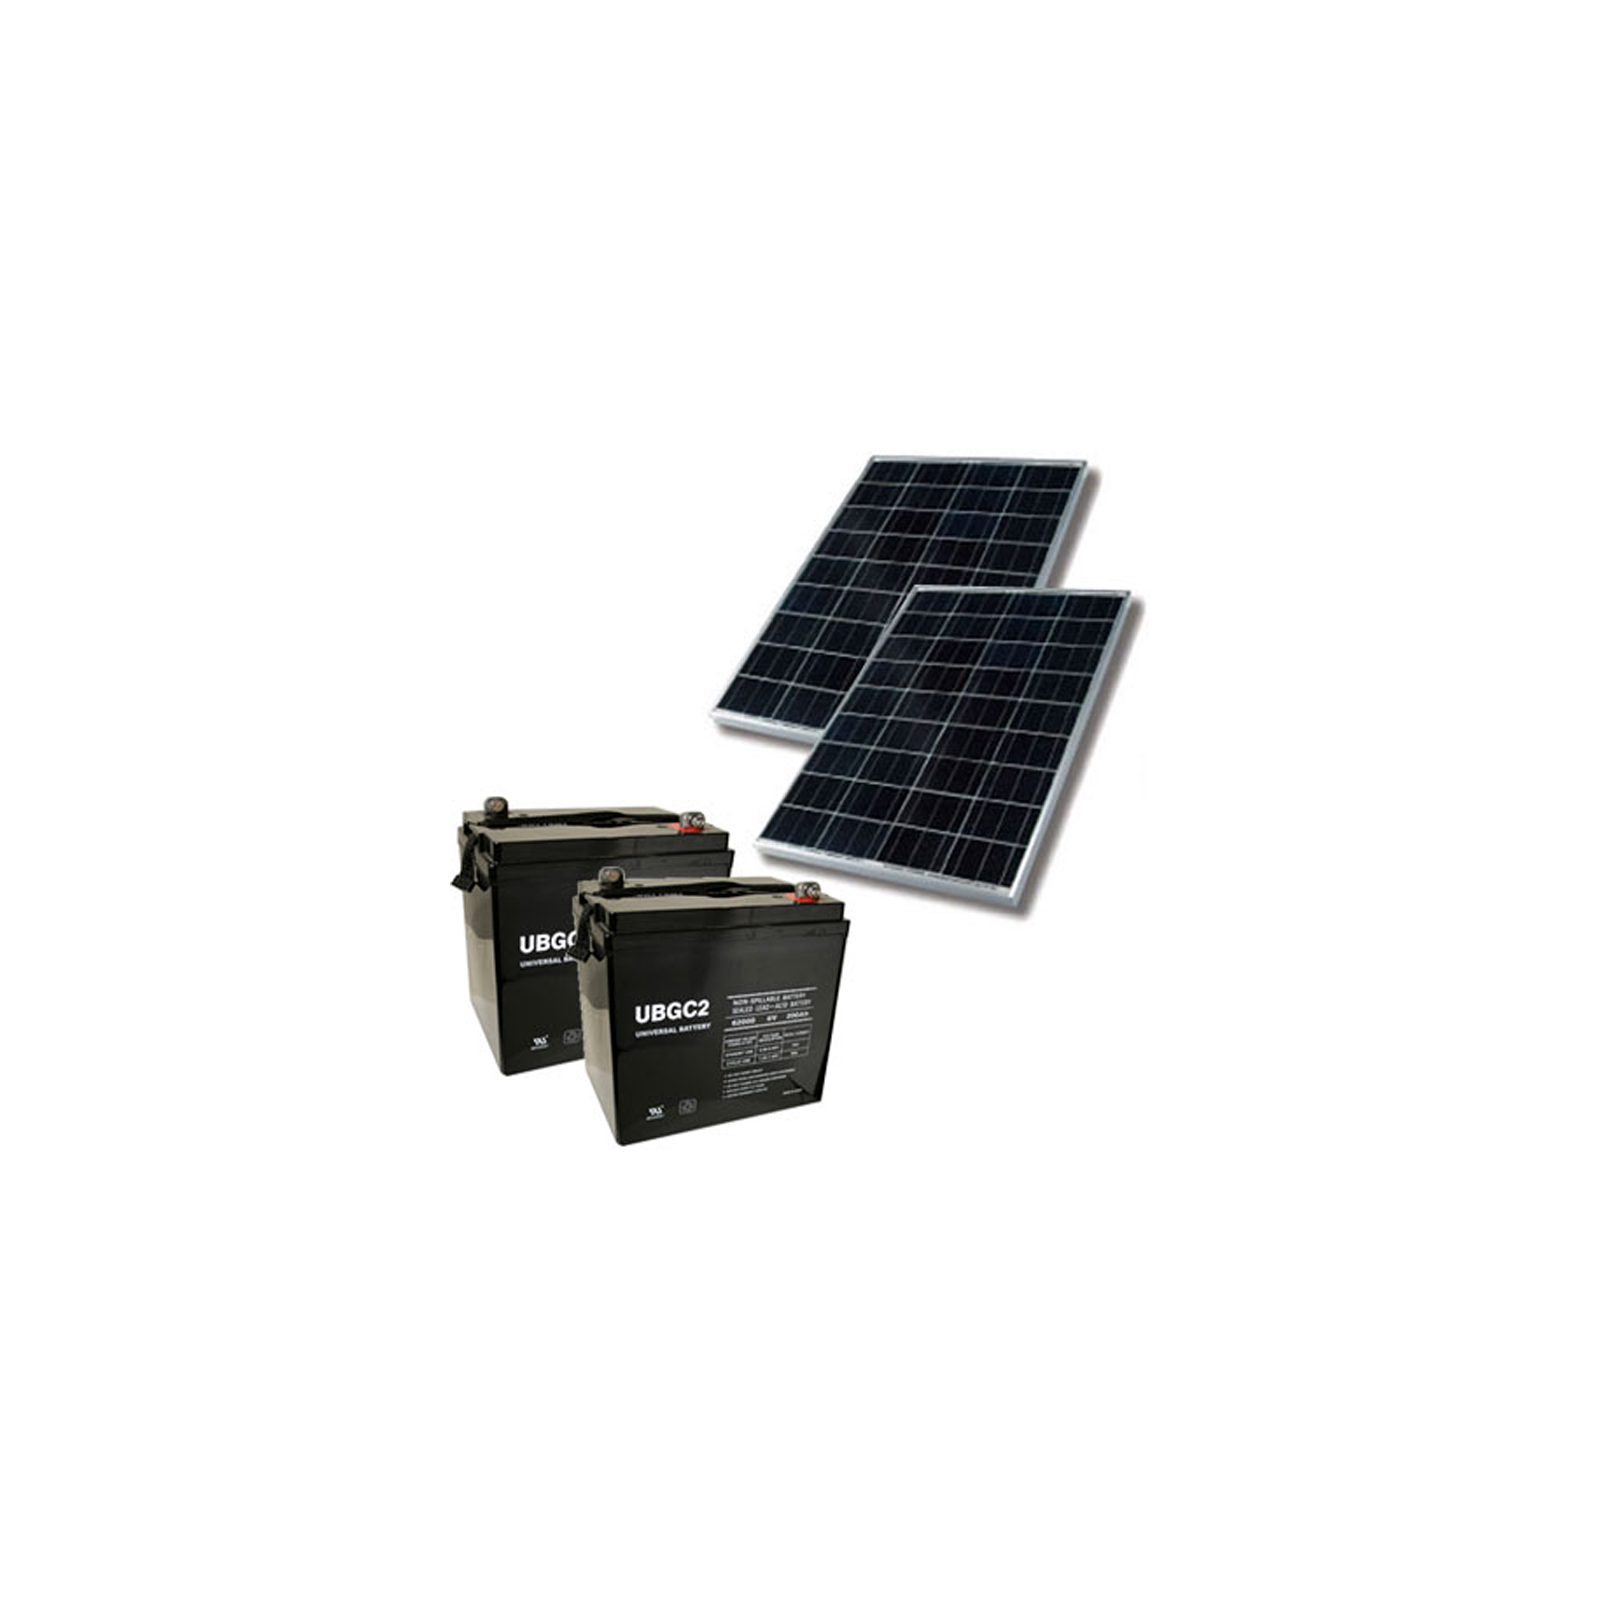 331420759950 also Product together with Solar USB Phone Charger With Battery Backup besides Wiring Diagram For Club Car Golf Cart Batteries also 171342141334. on rechargeable battery wiring diagram